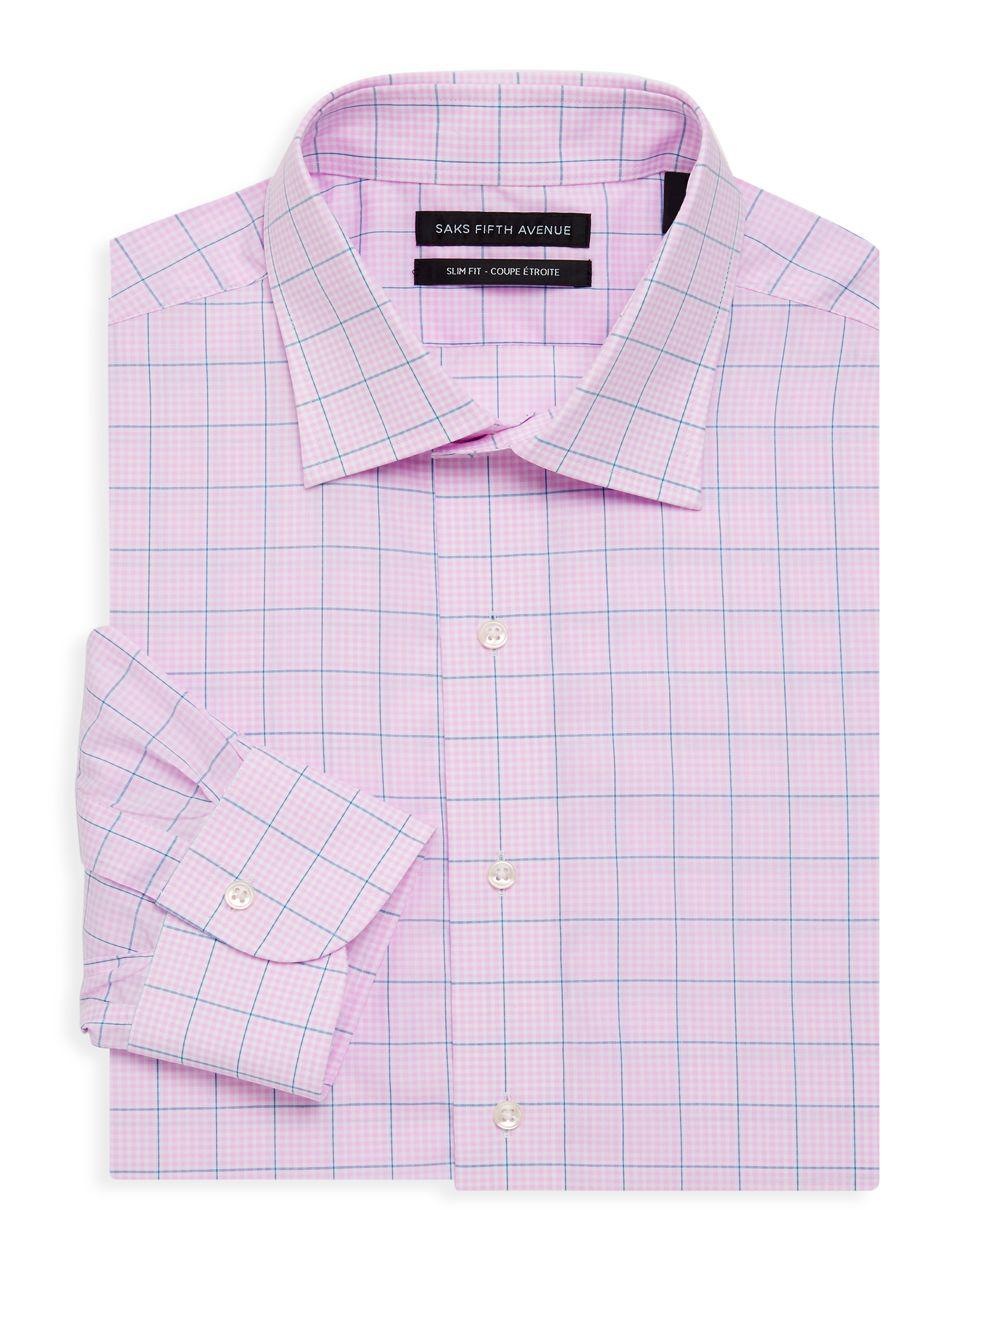 Lyst Saks Fifth Avenue Slim Fit Checkered Dress Shirt In Pink For Men